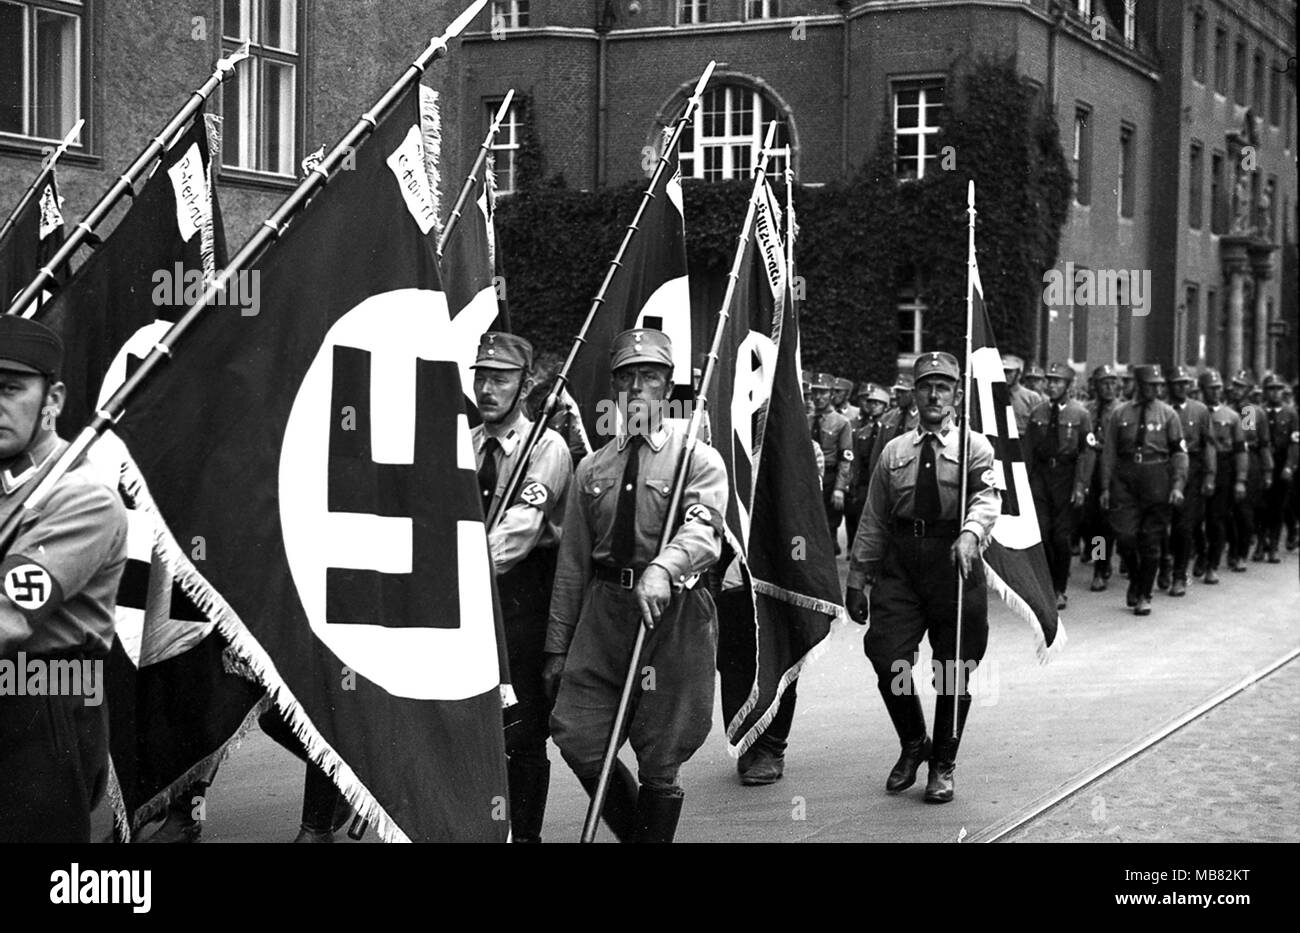 Sturmabteilung also called stormtoopers and Brownshirts carrying Swastika Flags in 1934 as they parade through Konigsberg in Germany. Konigsberg became Russian territory after the second world war and was renamed Kaliningrad. Stock Photo